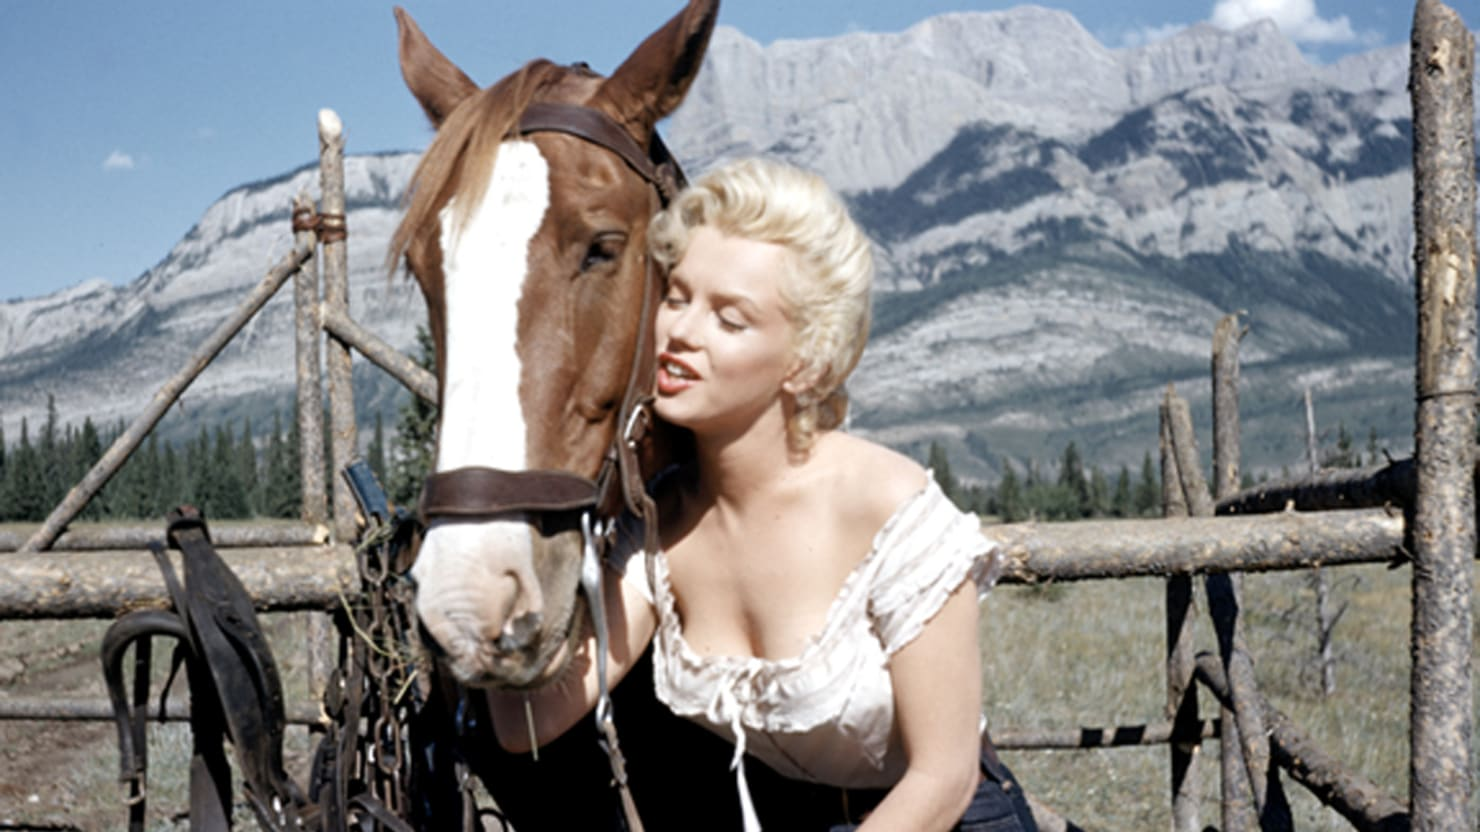 Never-Before-Published Photos of Marilyn Monroe